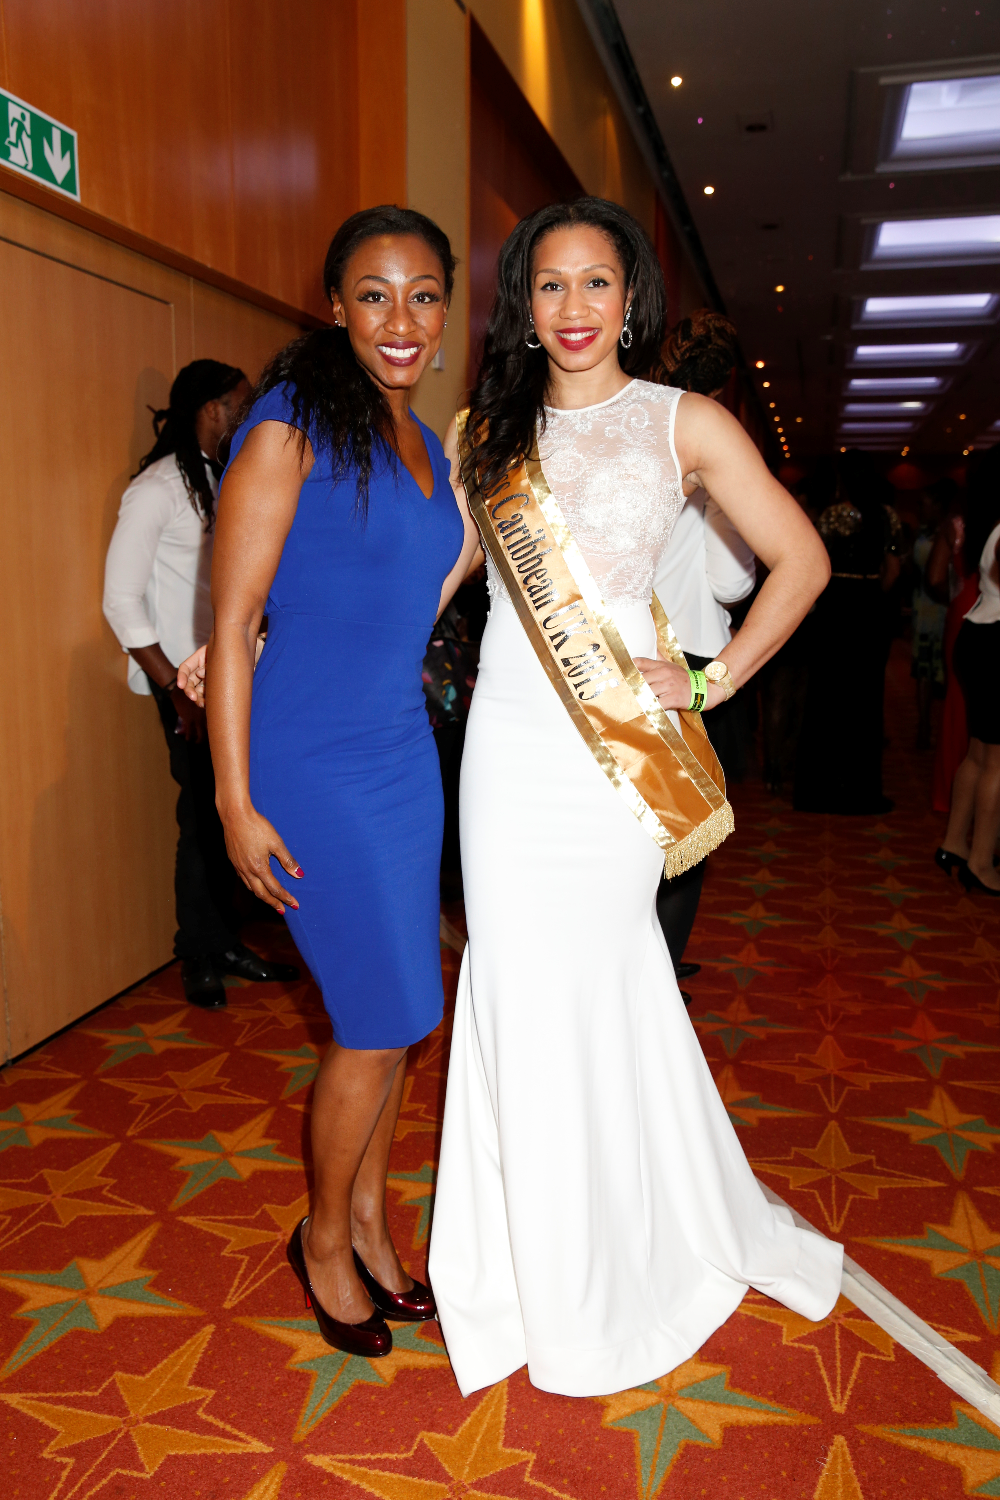 Amy Harris-Willock with Beverley Knight (recording artist)